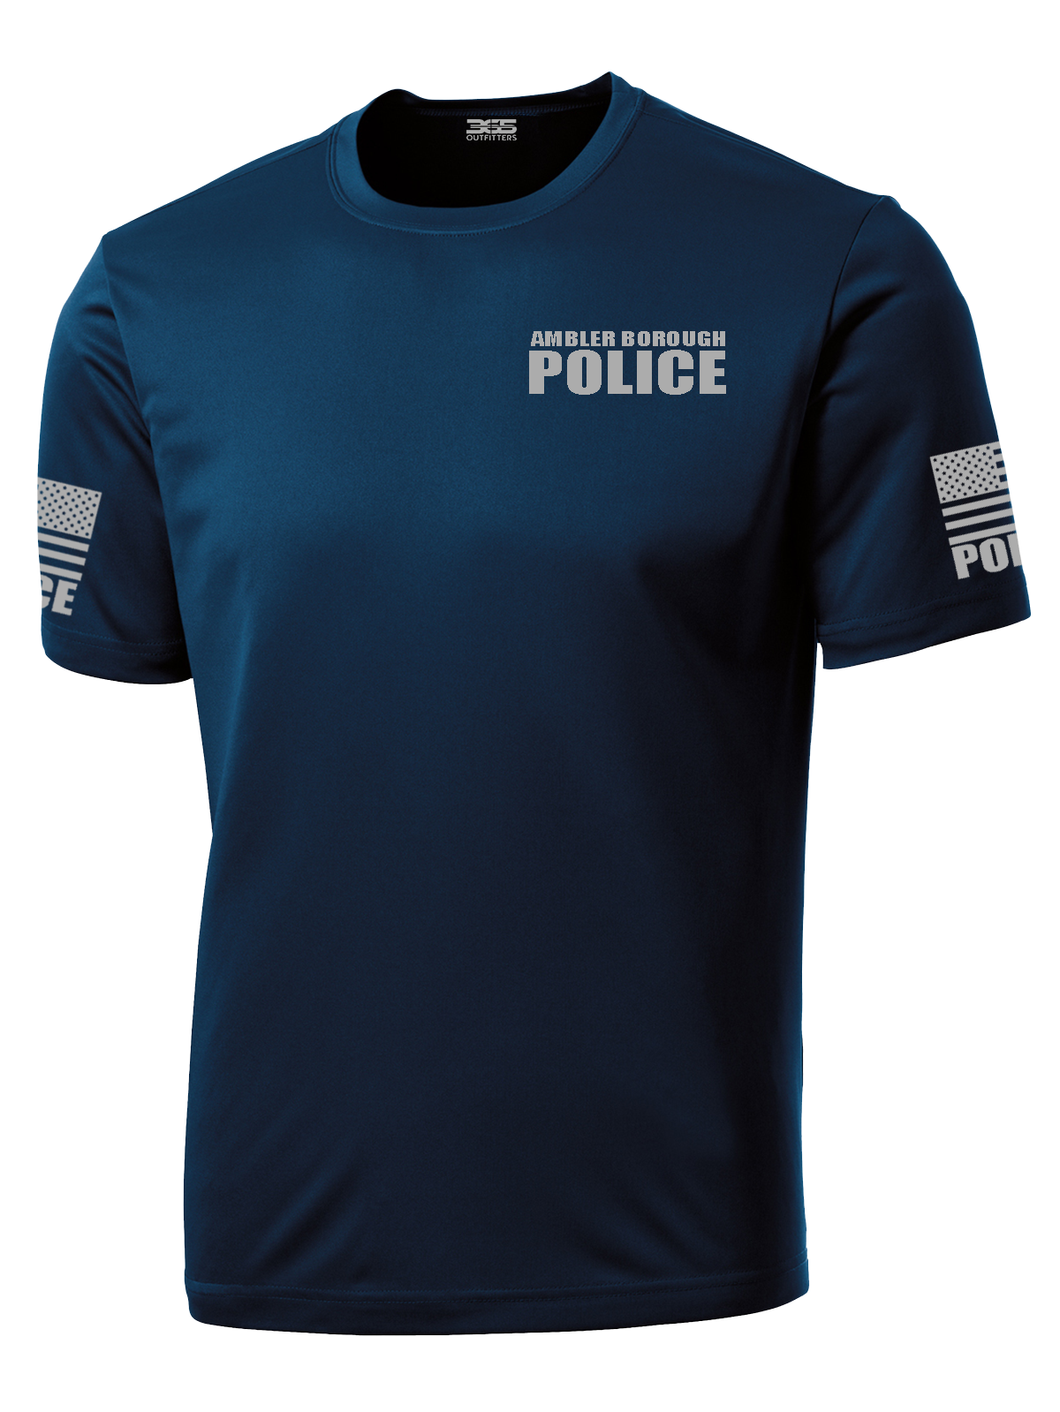 Ambler Borough Police Officer Performance Shirt - №365 Outfitters